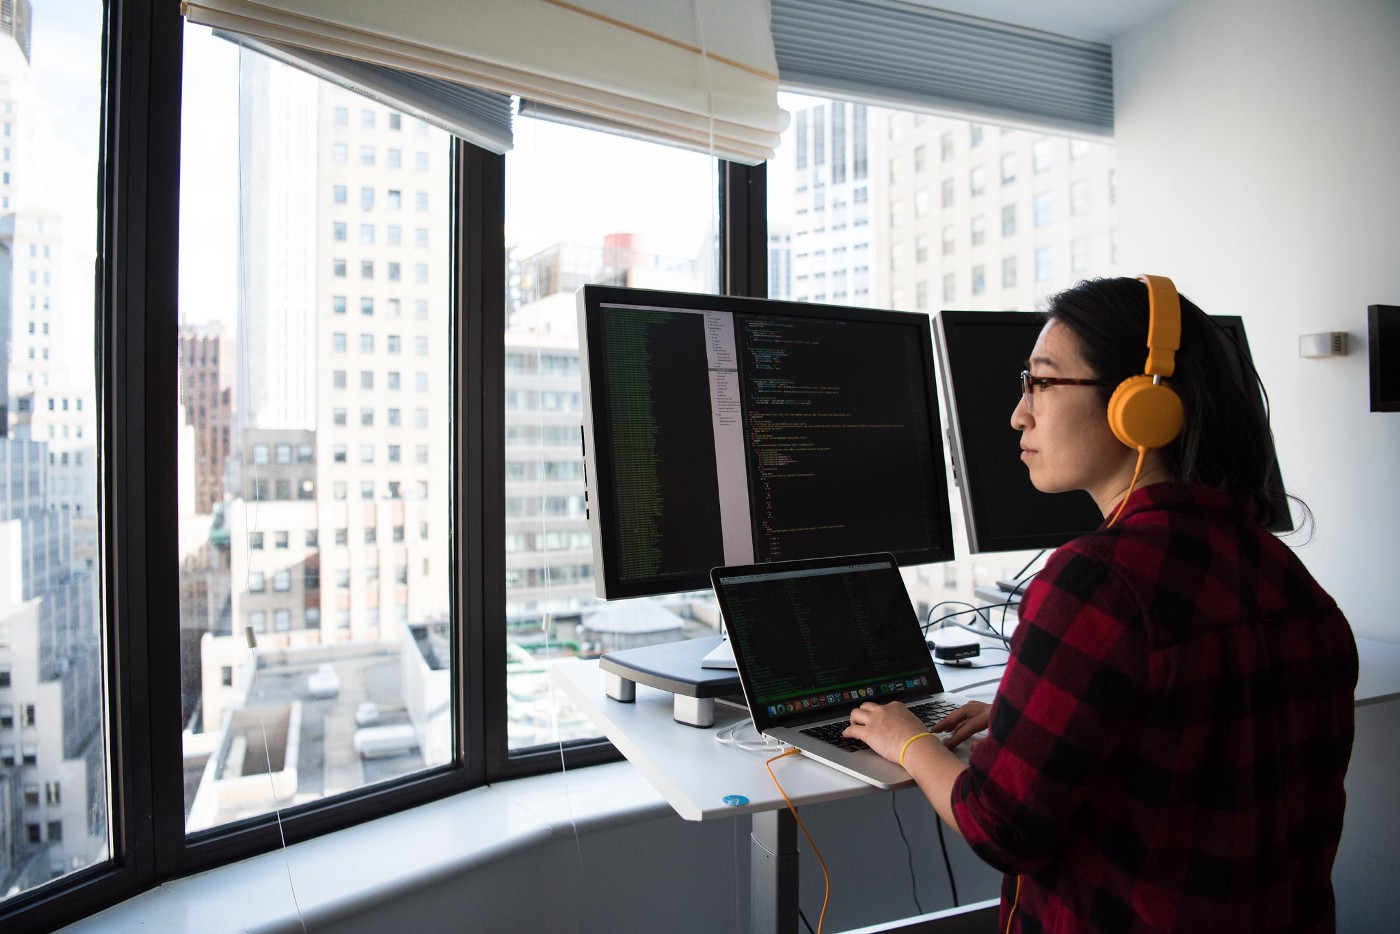 A woman looks outside the window of a high-rise building while sitting at a desk with her computers.